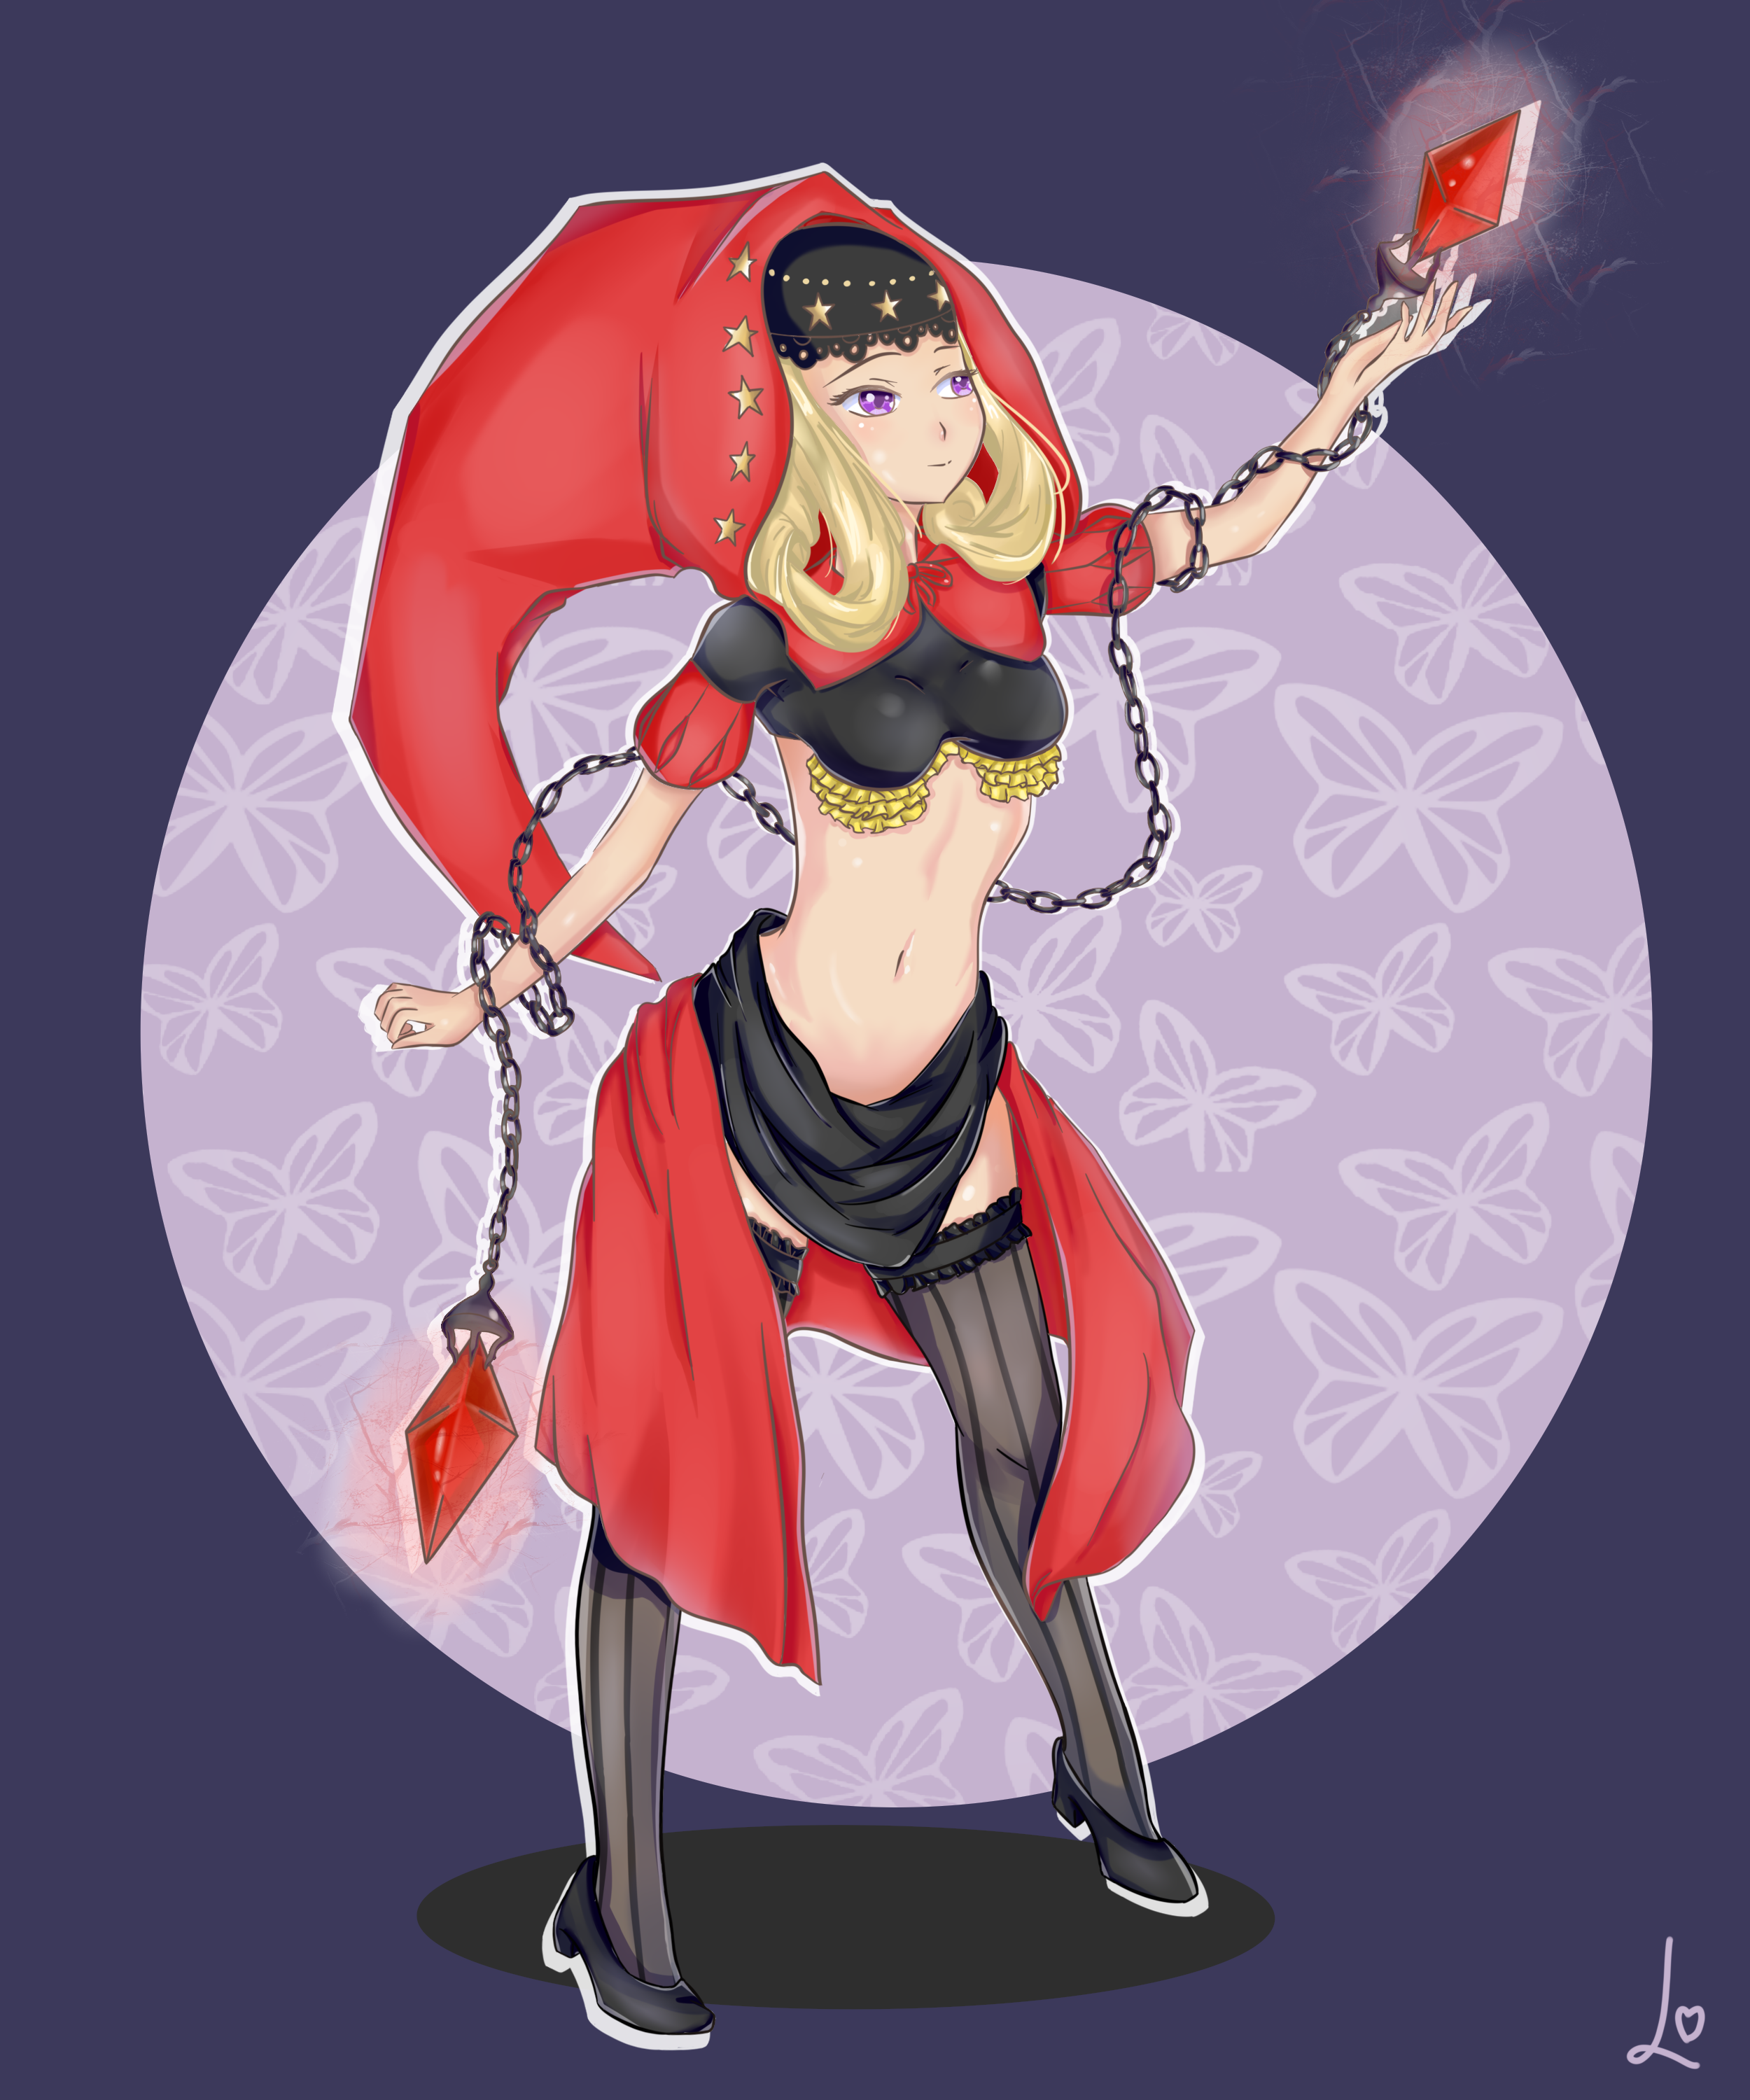 Velvet The Witch Of Elrit Odin Sphere Fanart By Lunyanyu